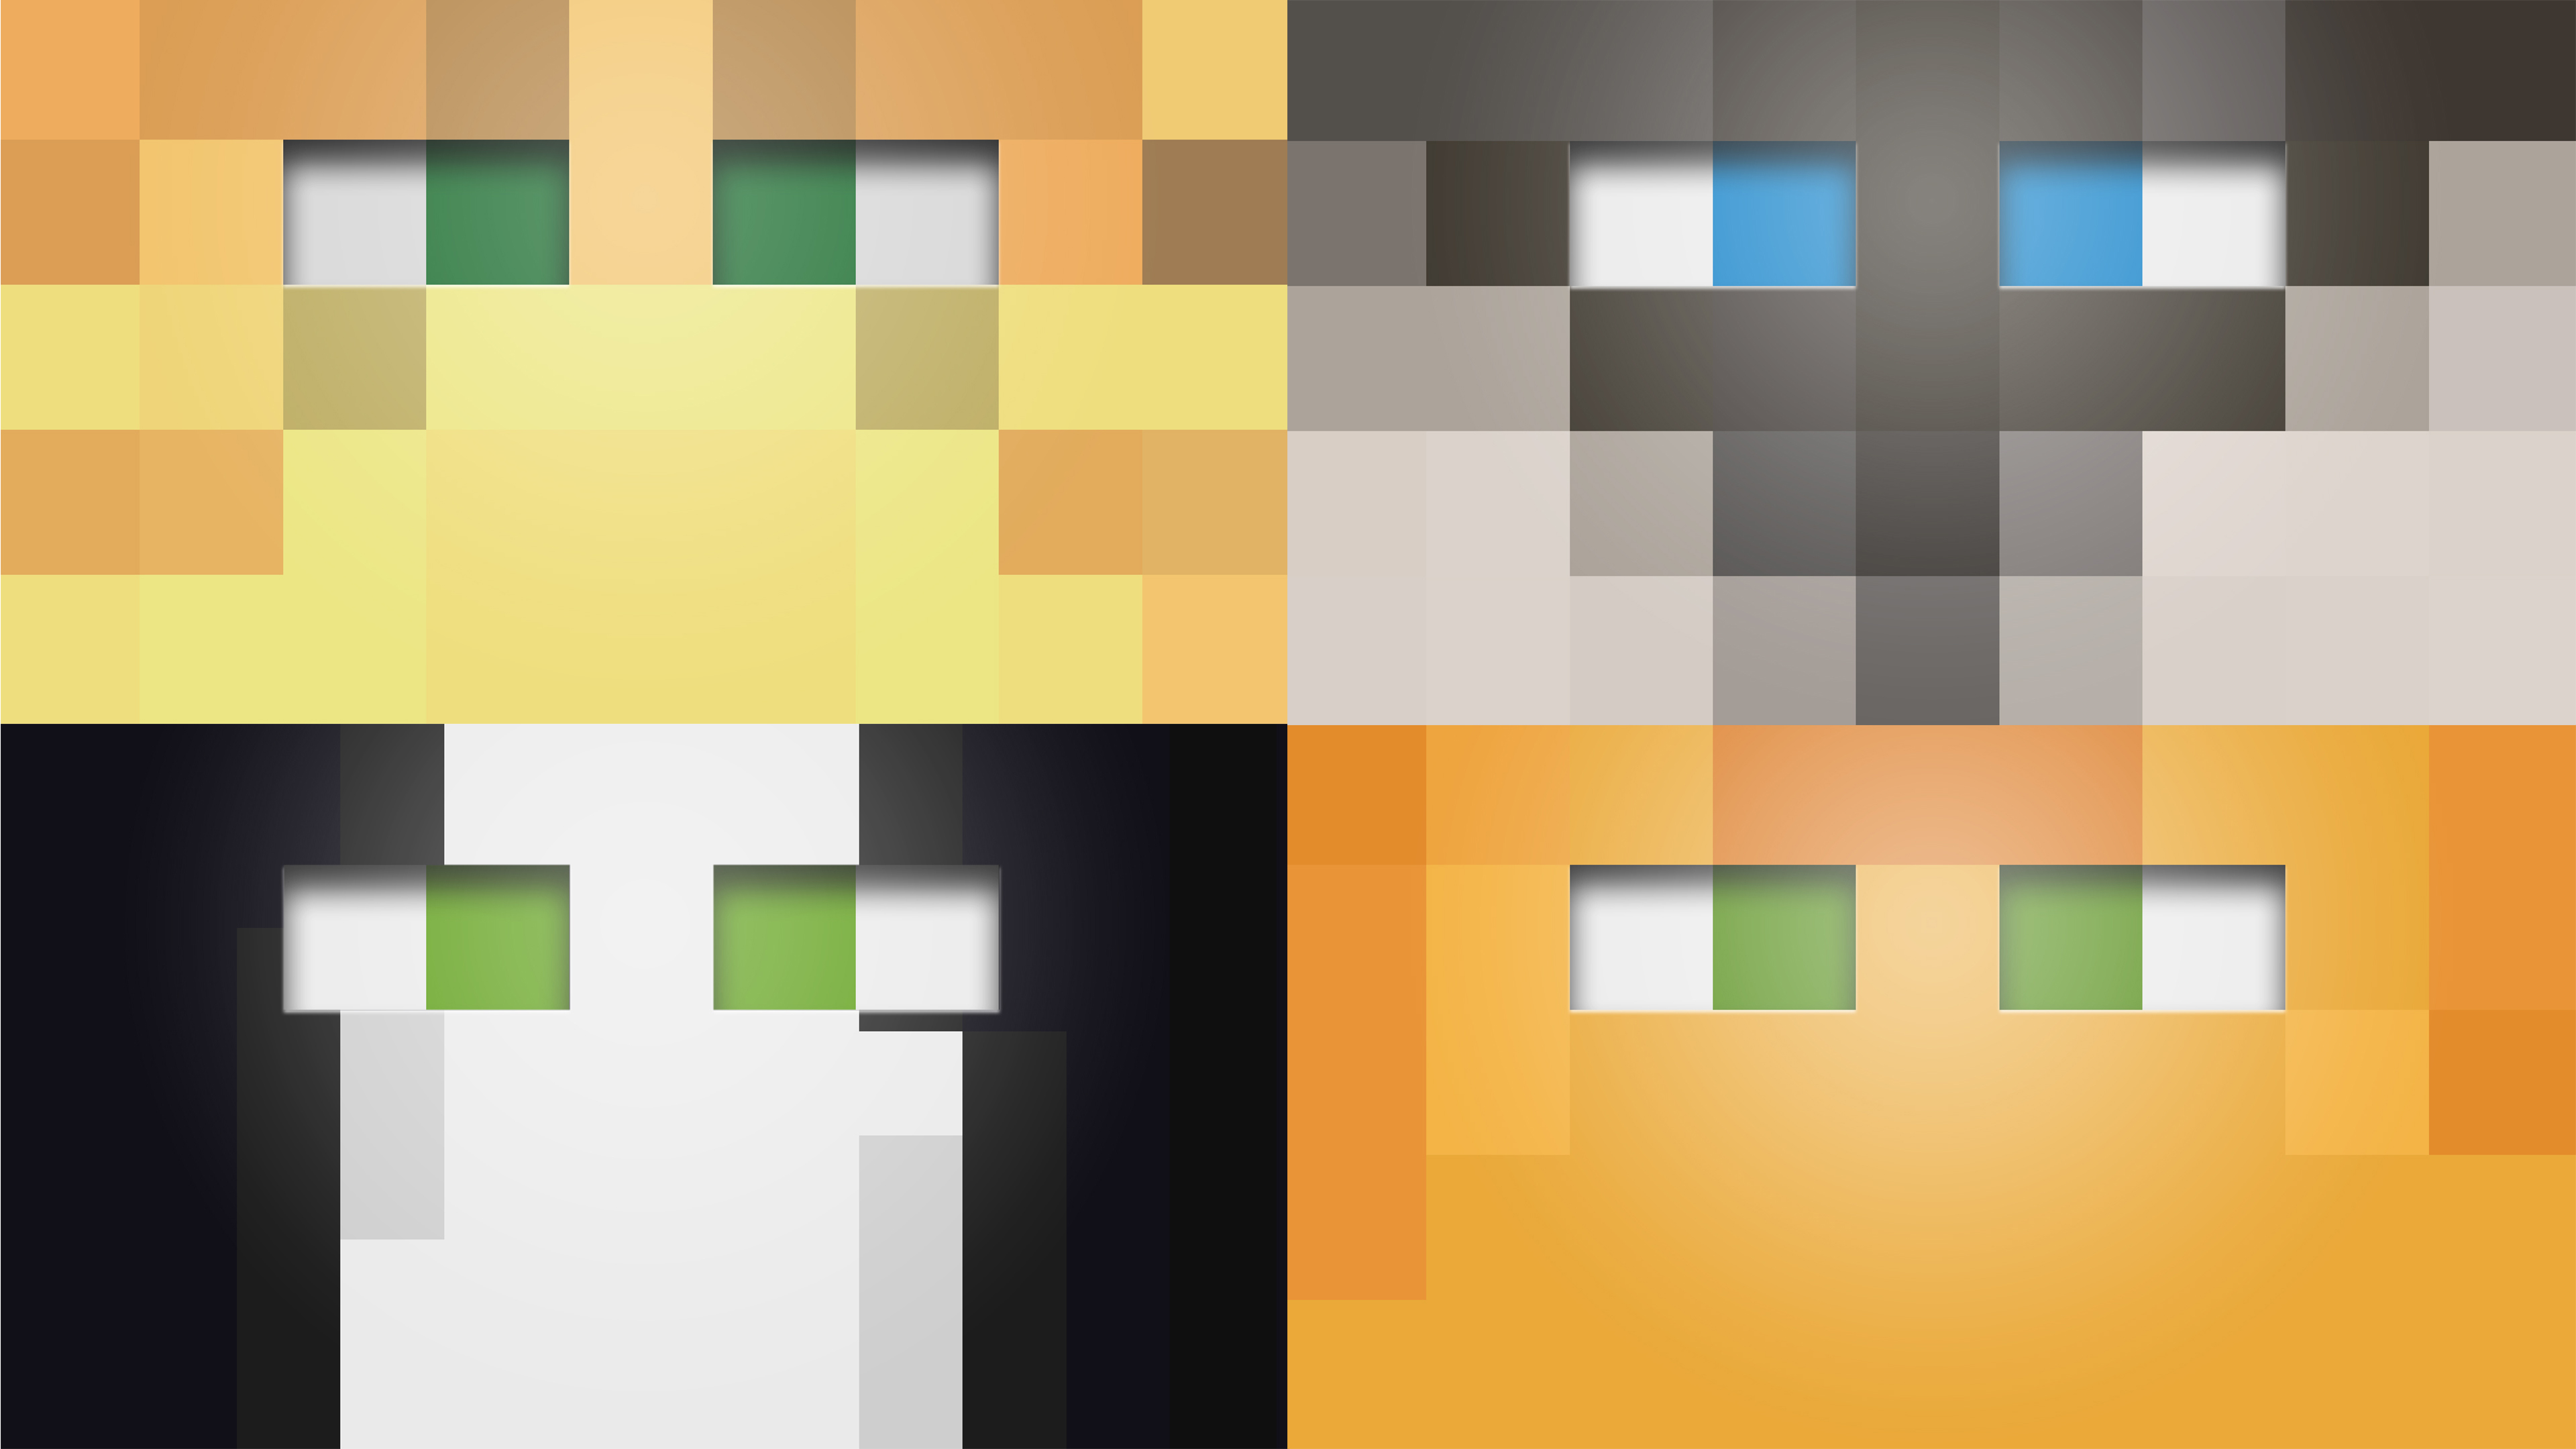 minecraft cat wallpapers by averagejoeftw fan art wallpaper games 3840x2160